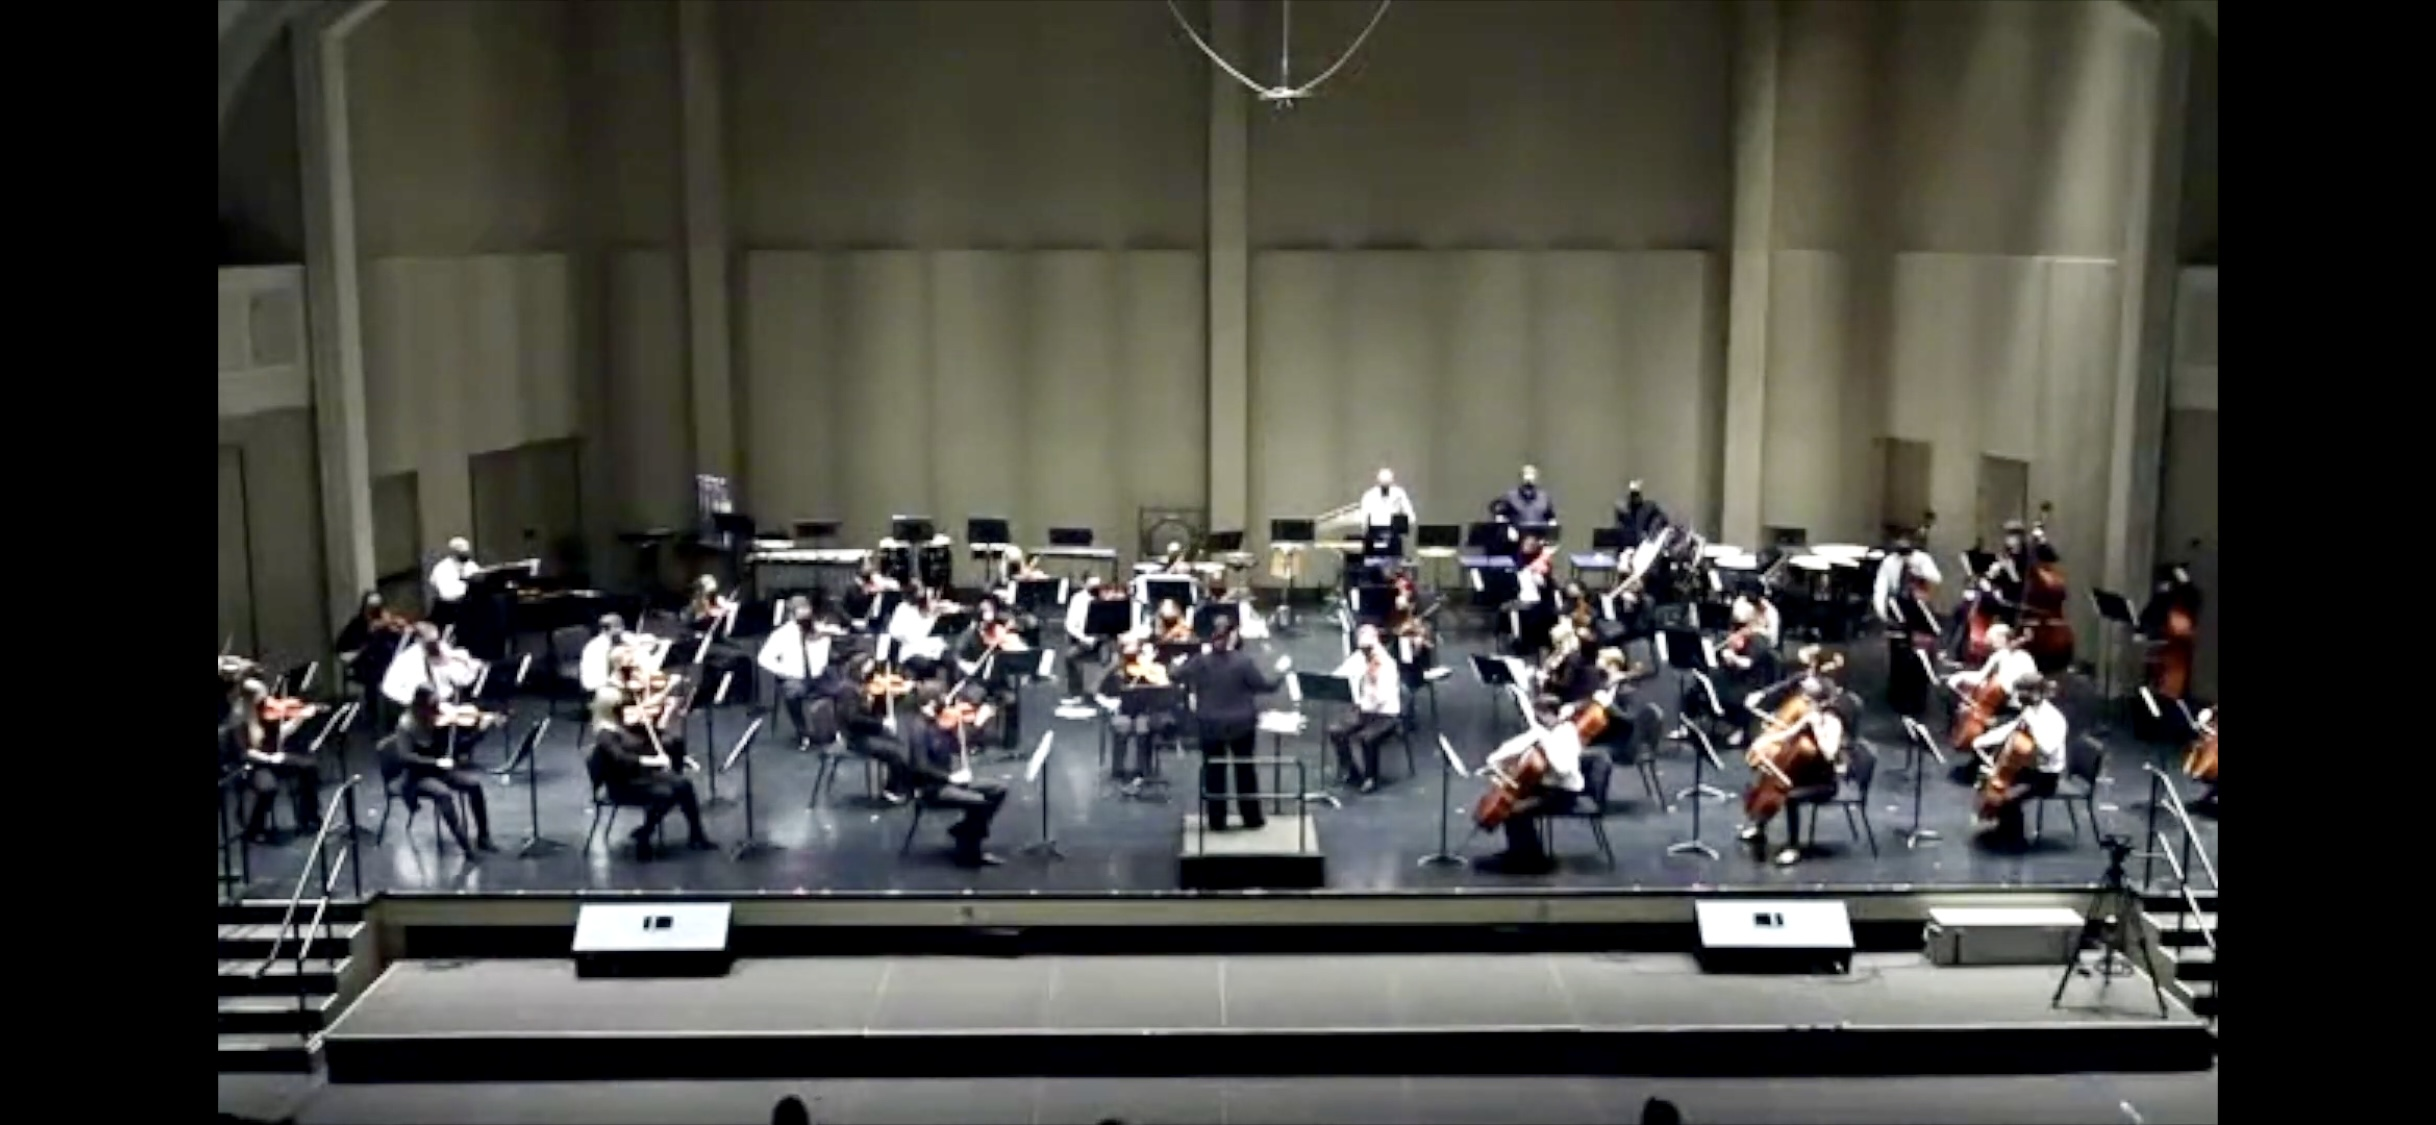 Details For Event 19174 – University Community Orchestra String and Percussion Ensemble